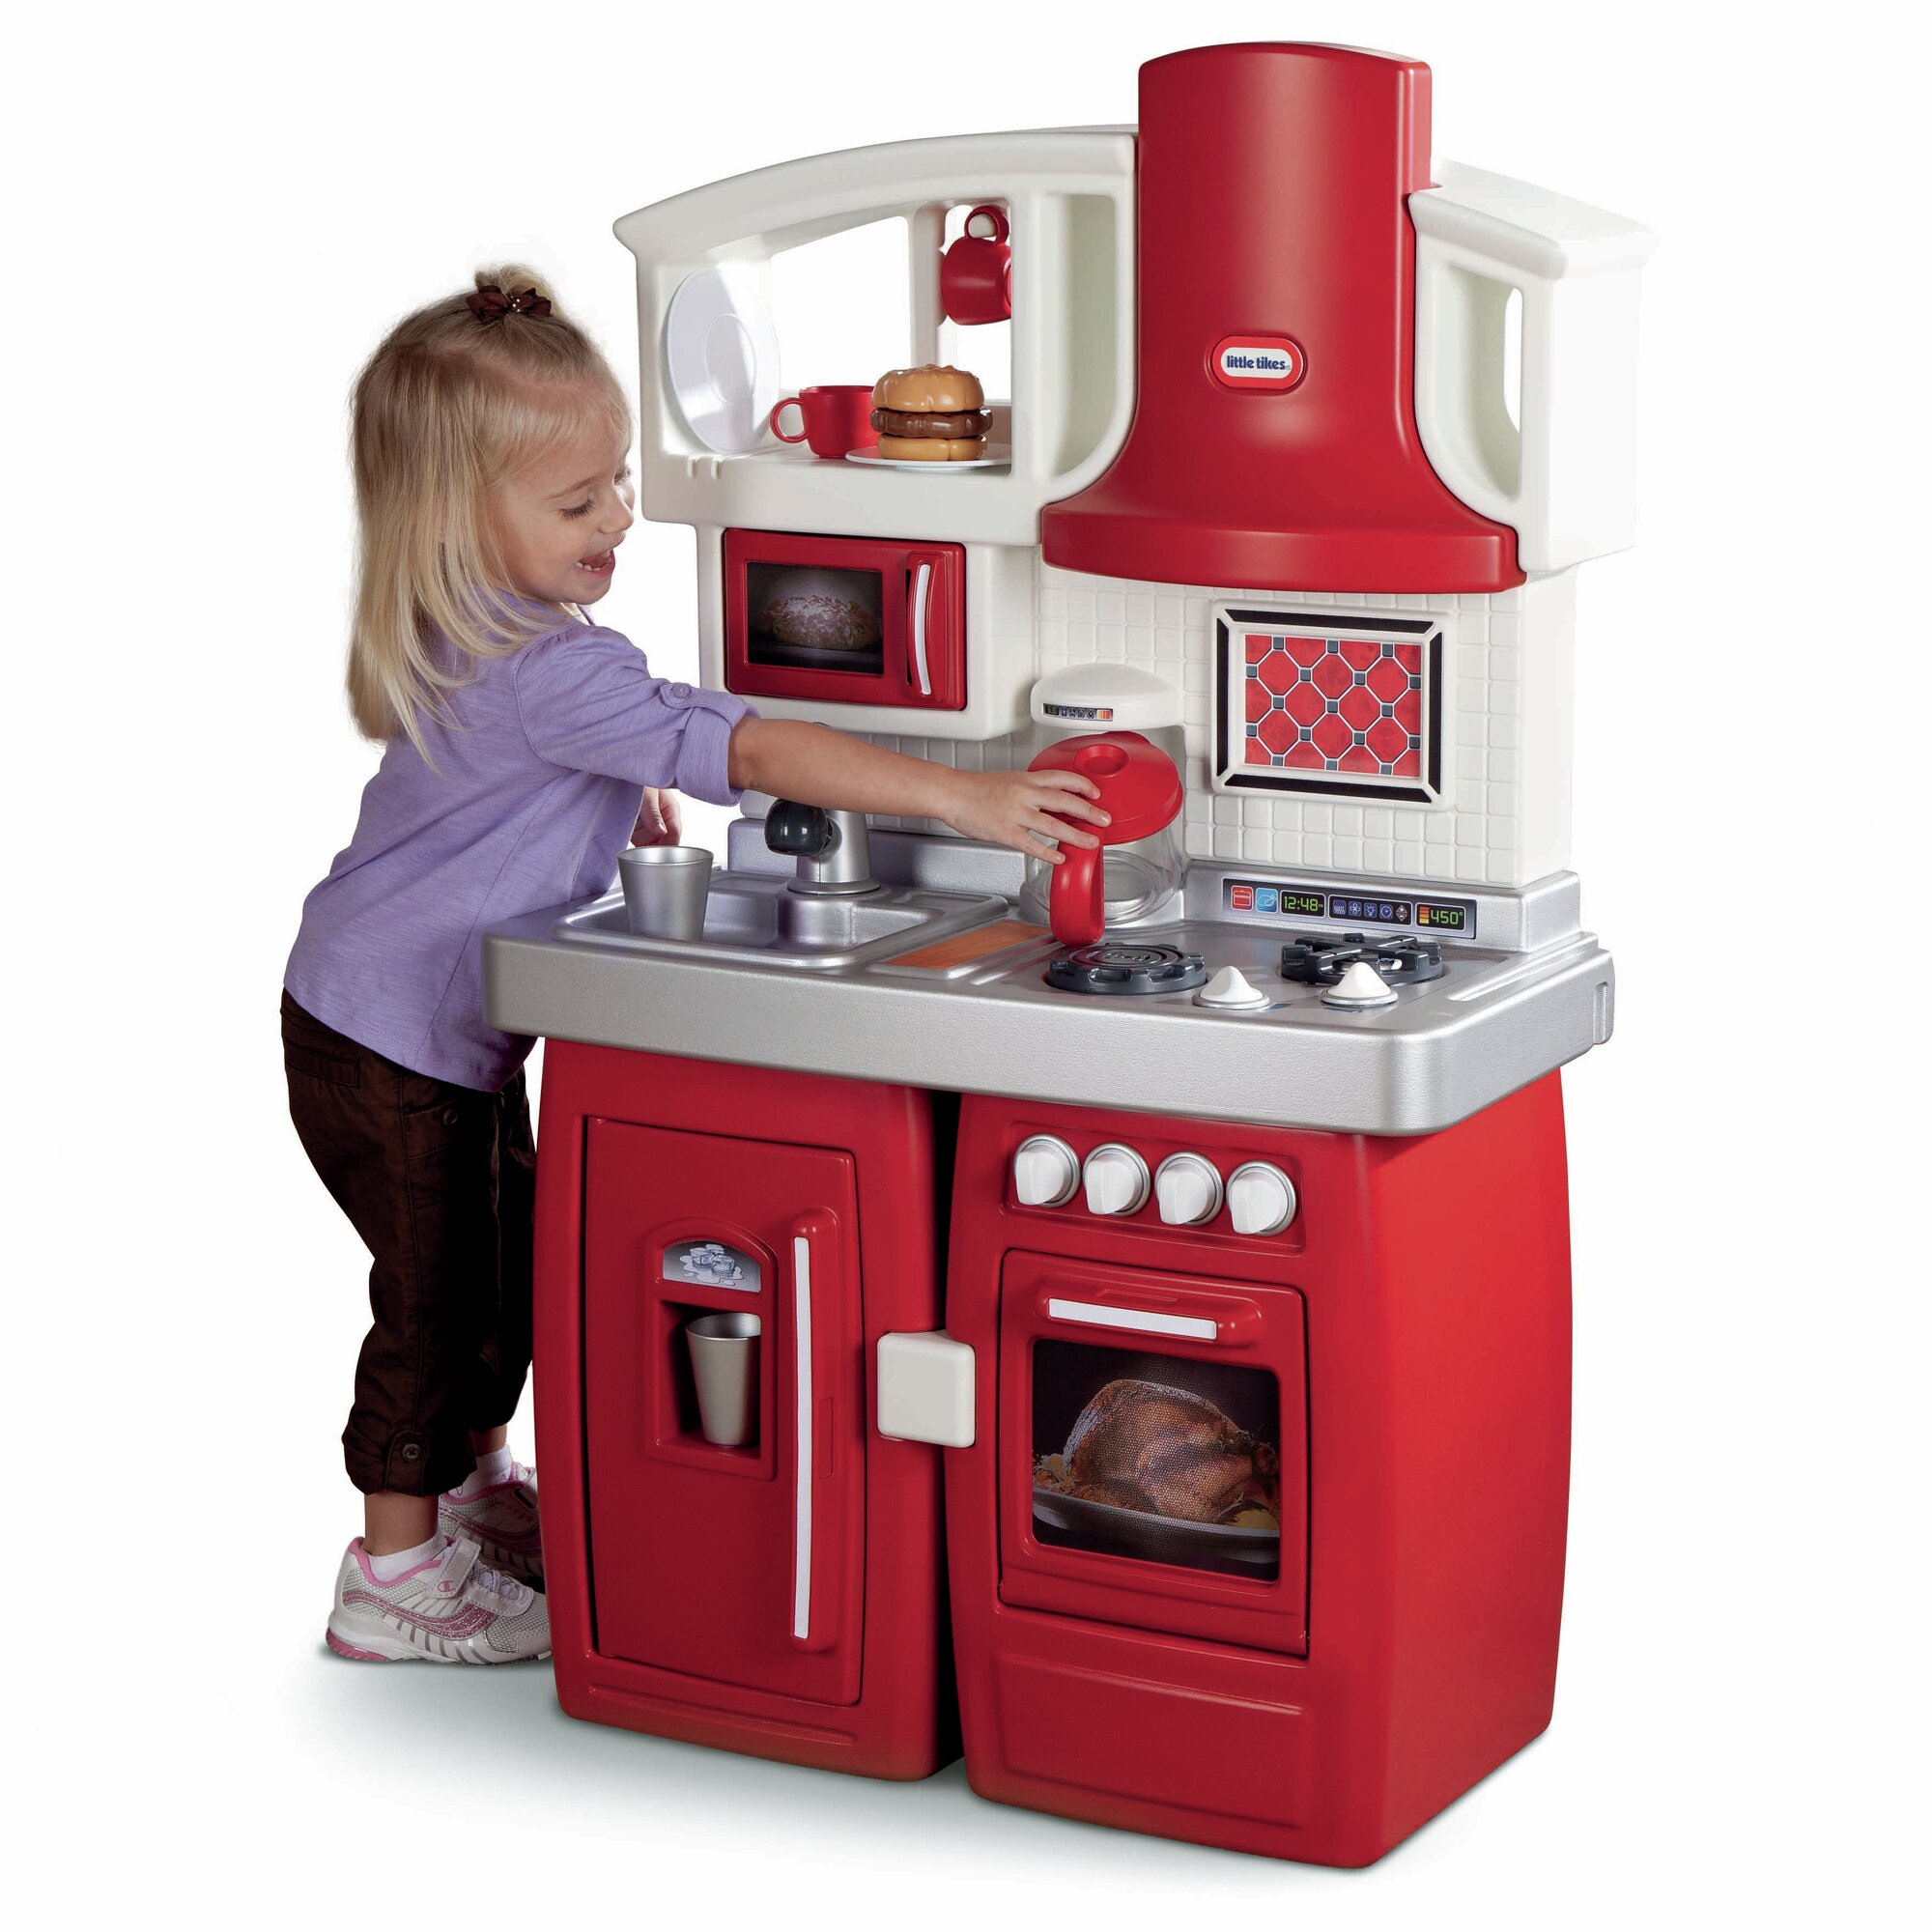 Kitchen Set Instan: Little Tikes Cook 'n Grow Kitchen Set & Reviews